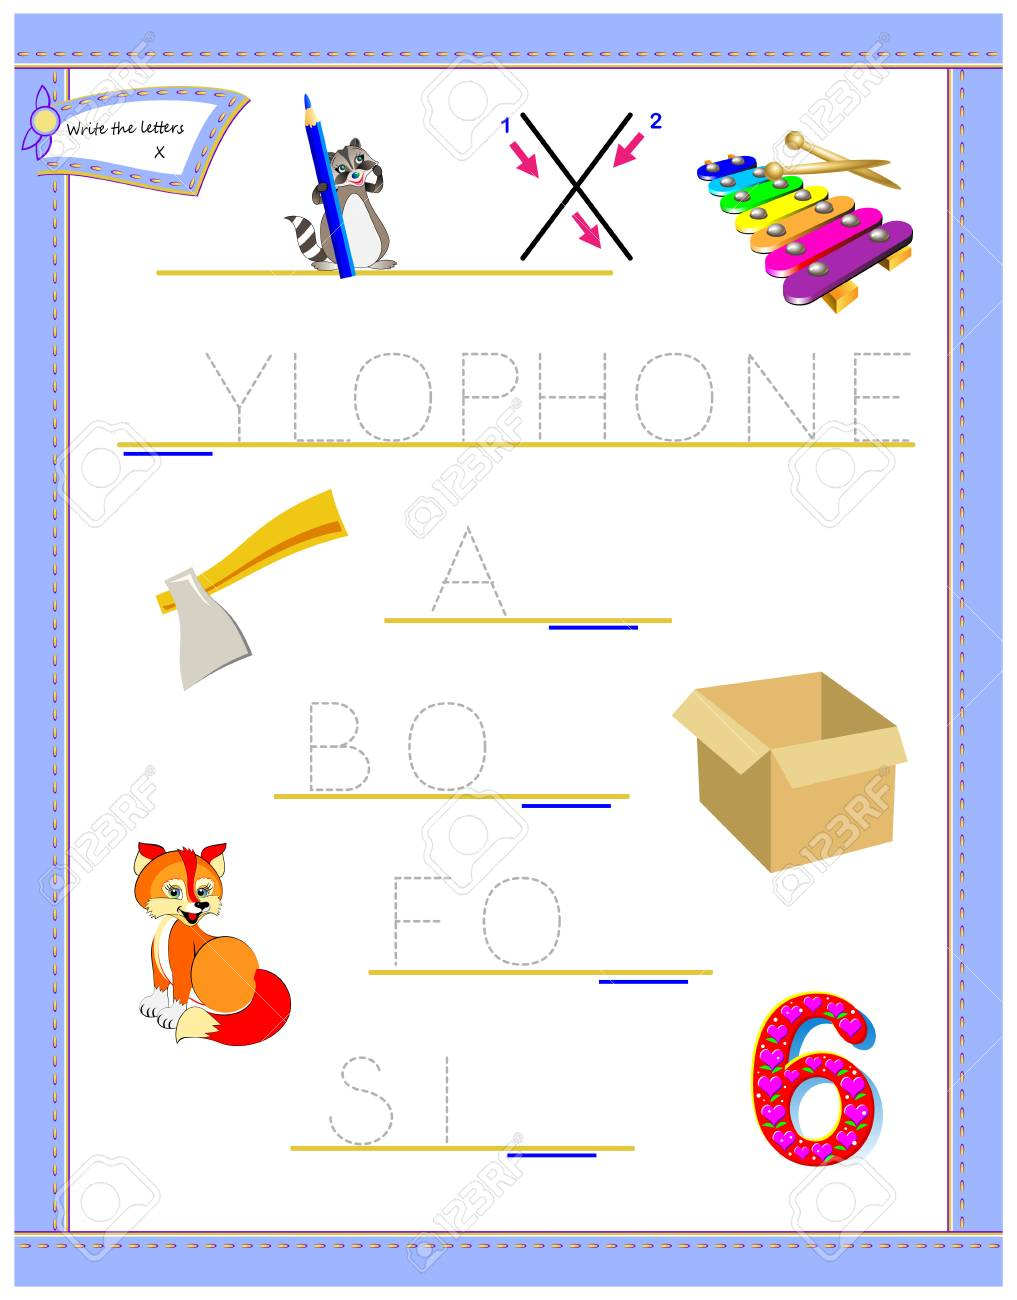 photograph regarding Letter X Printable identified as Tracing letter X for examine English alphabet. Printable worksheet..